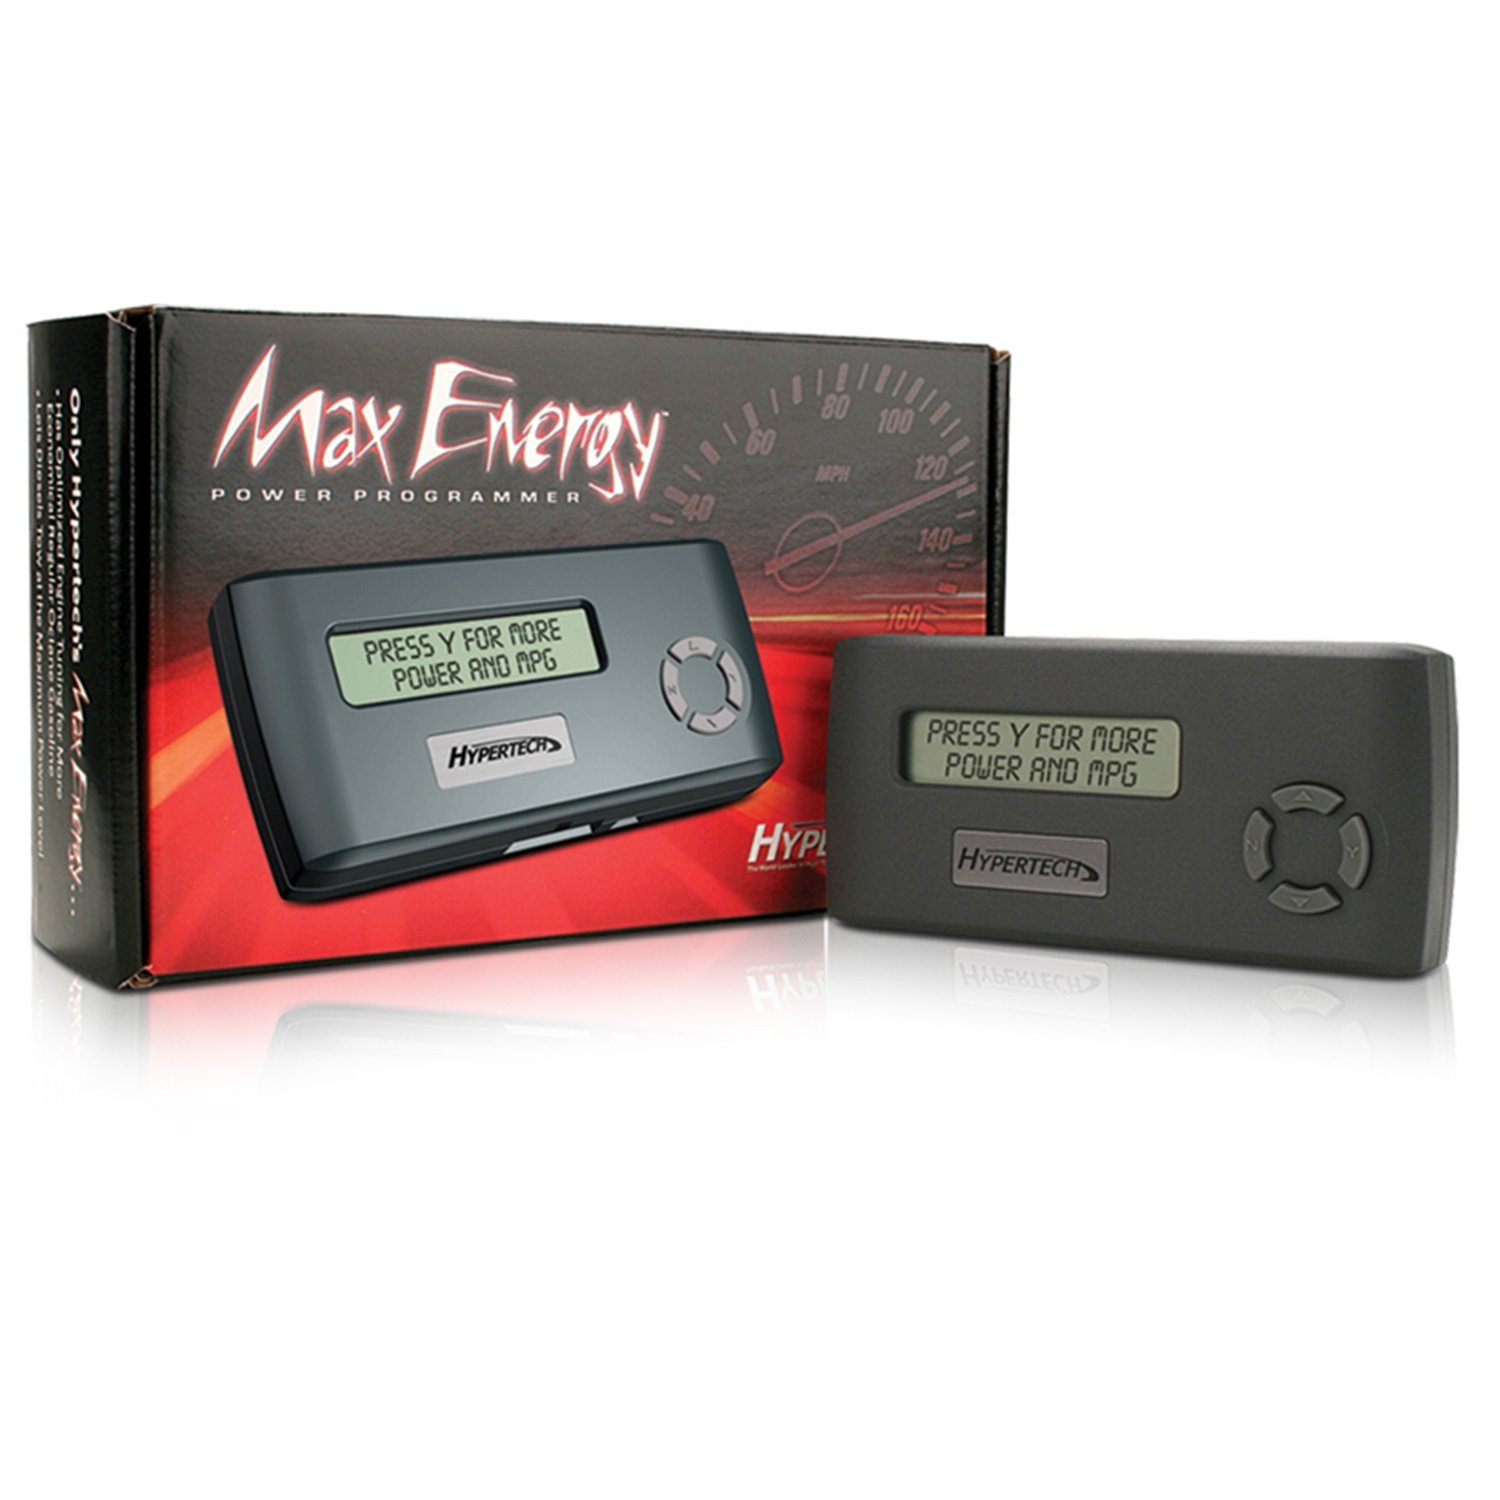 1. Hypertech 32501 Max Energy Power Programmer for 6.2 Denali